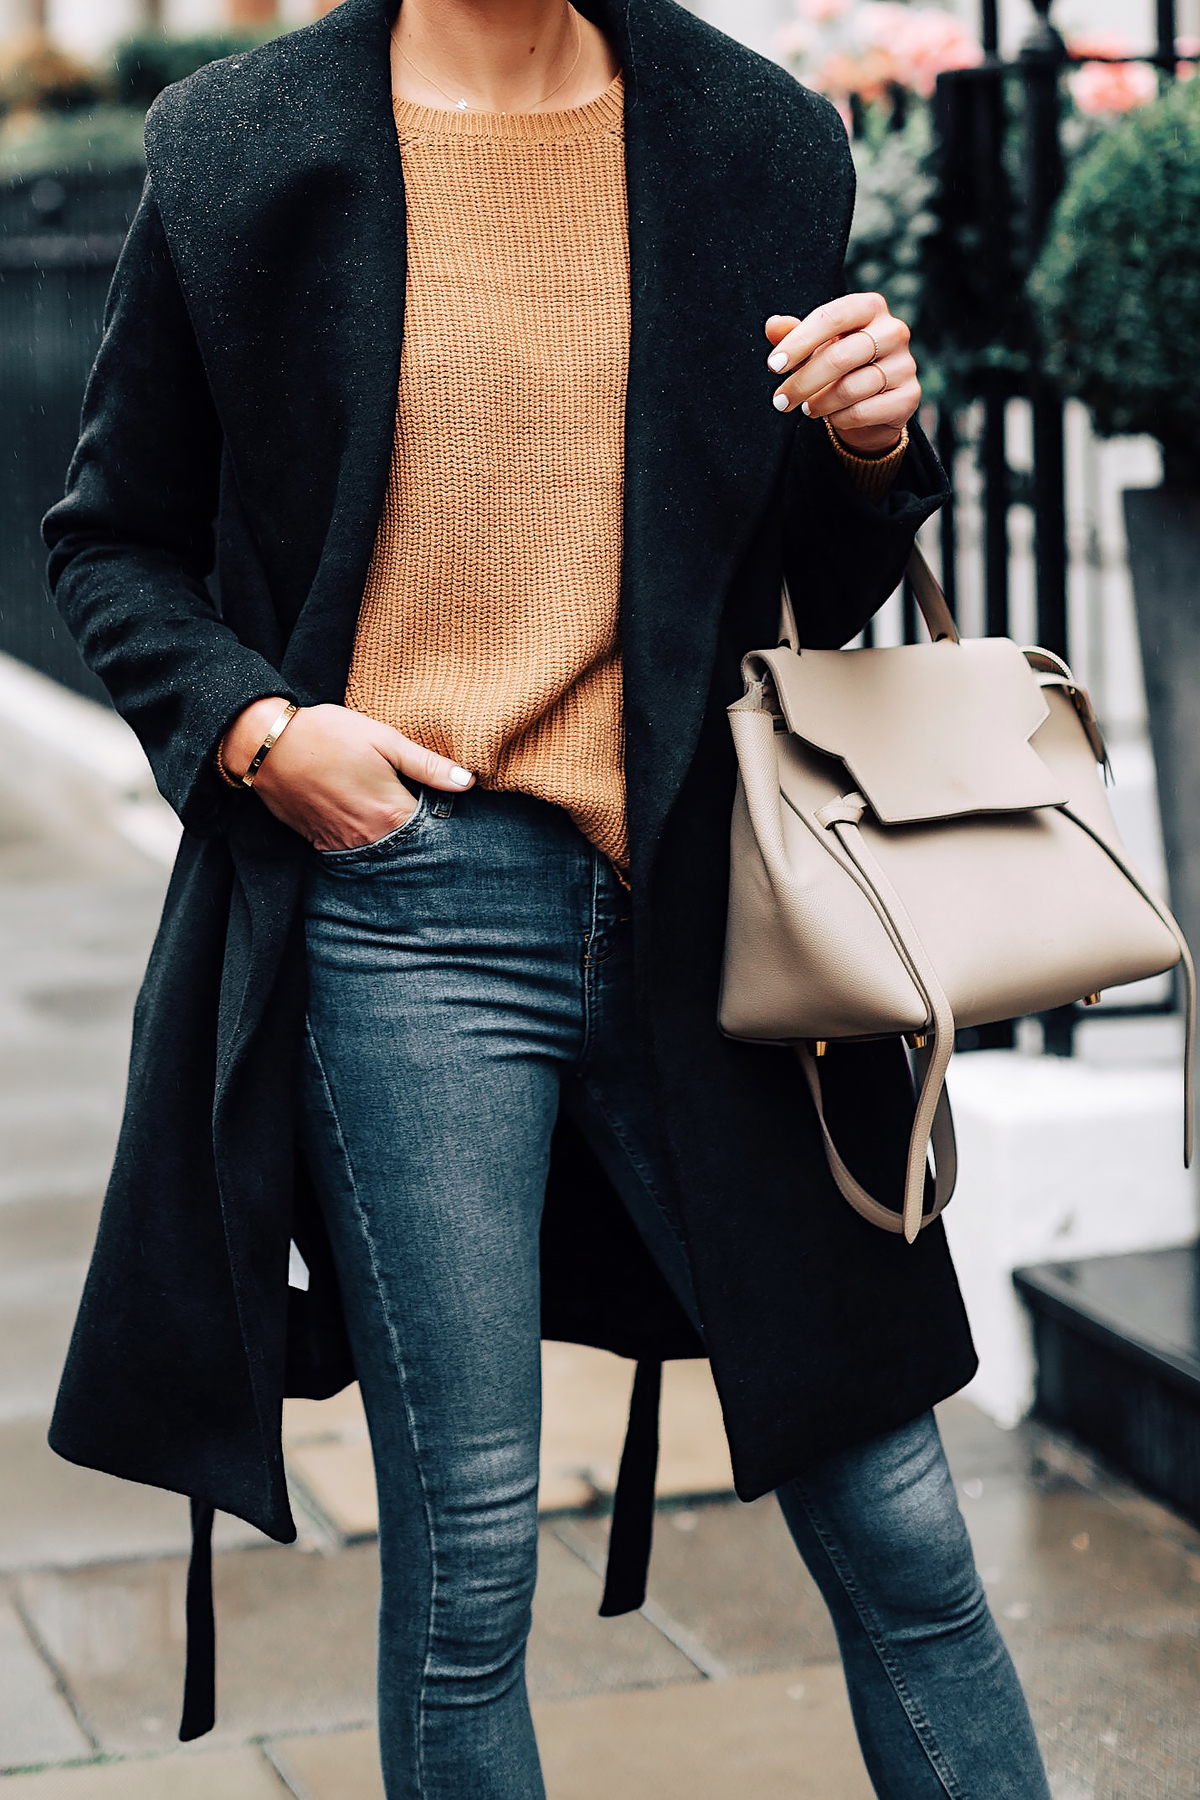 Woman Wearing Ann Taylor Black Wrap Coat Camel Sweater Denim Skinny Jeans Outfit Celine Mini Belt Bag Fashion Jackson San Diego Fashion Blogger London Street Style